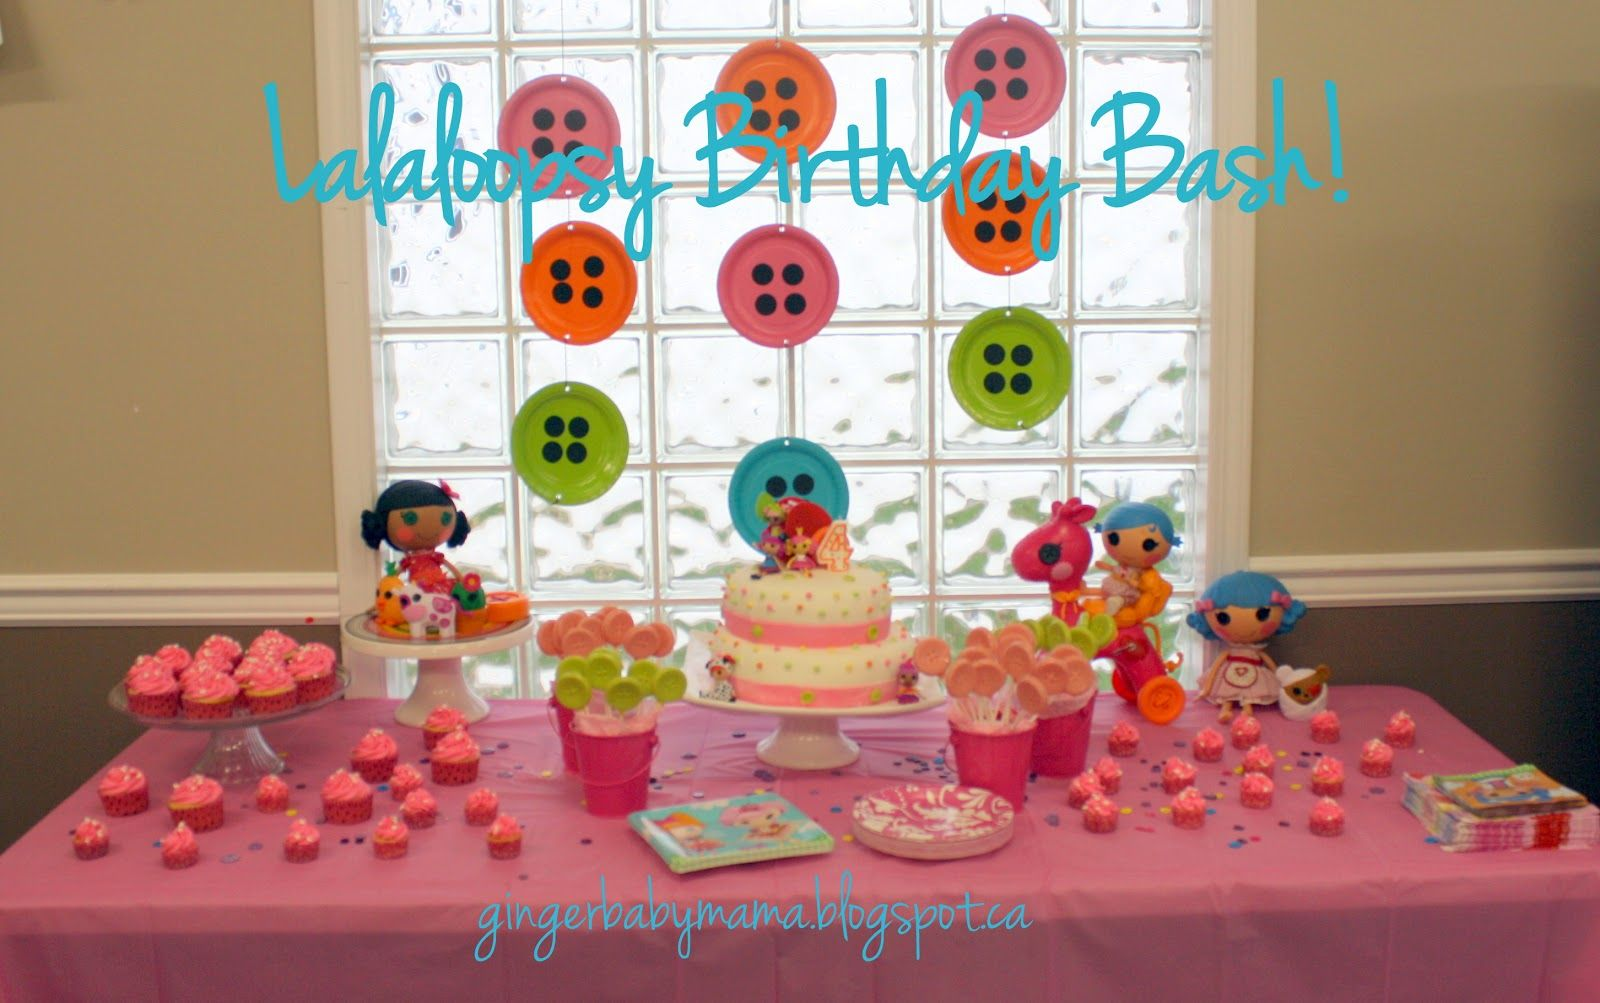 Lalaloopsy birthday party decorations  sweet table. Lalaloopsy birthday party decorations  sweet table